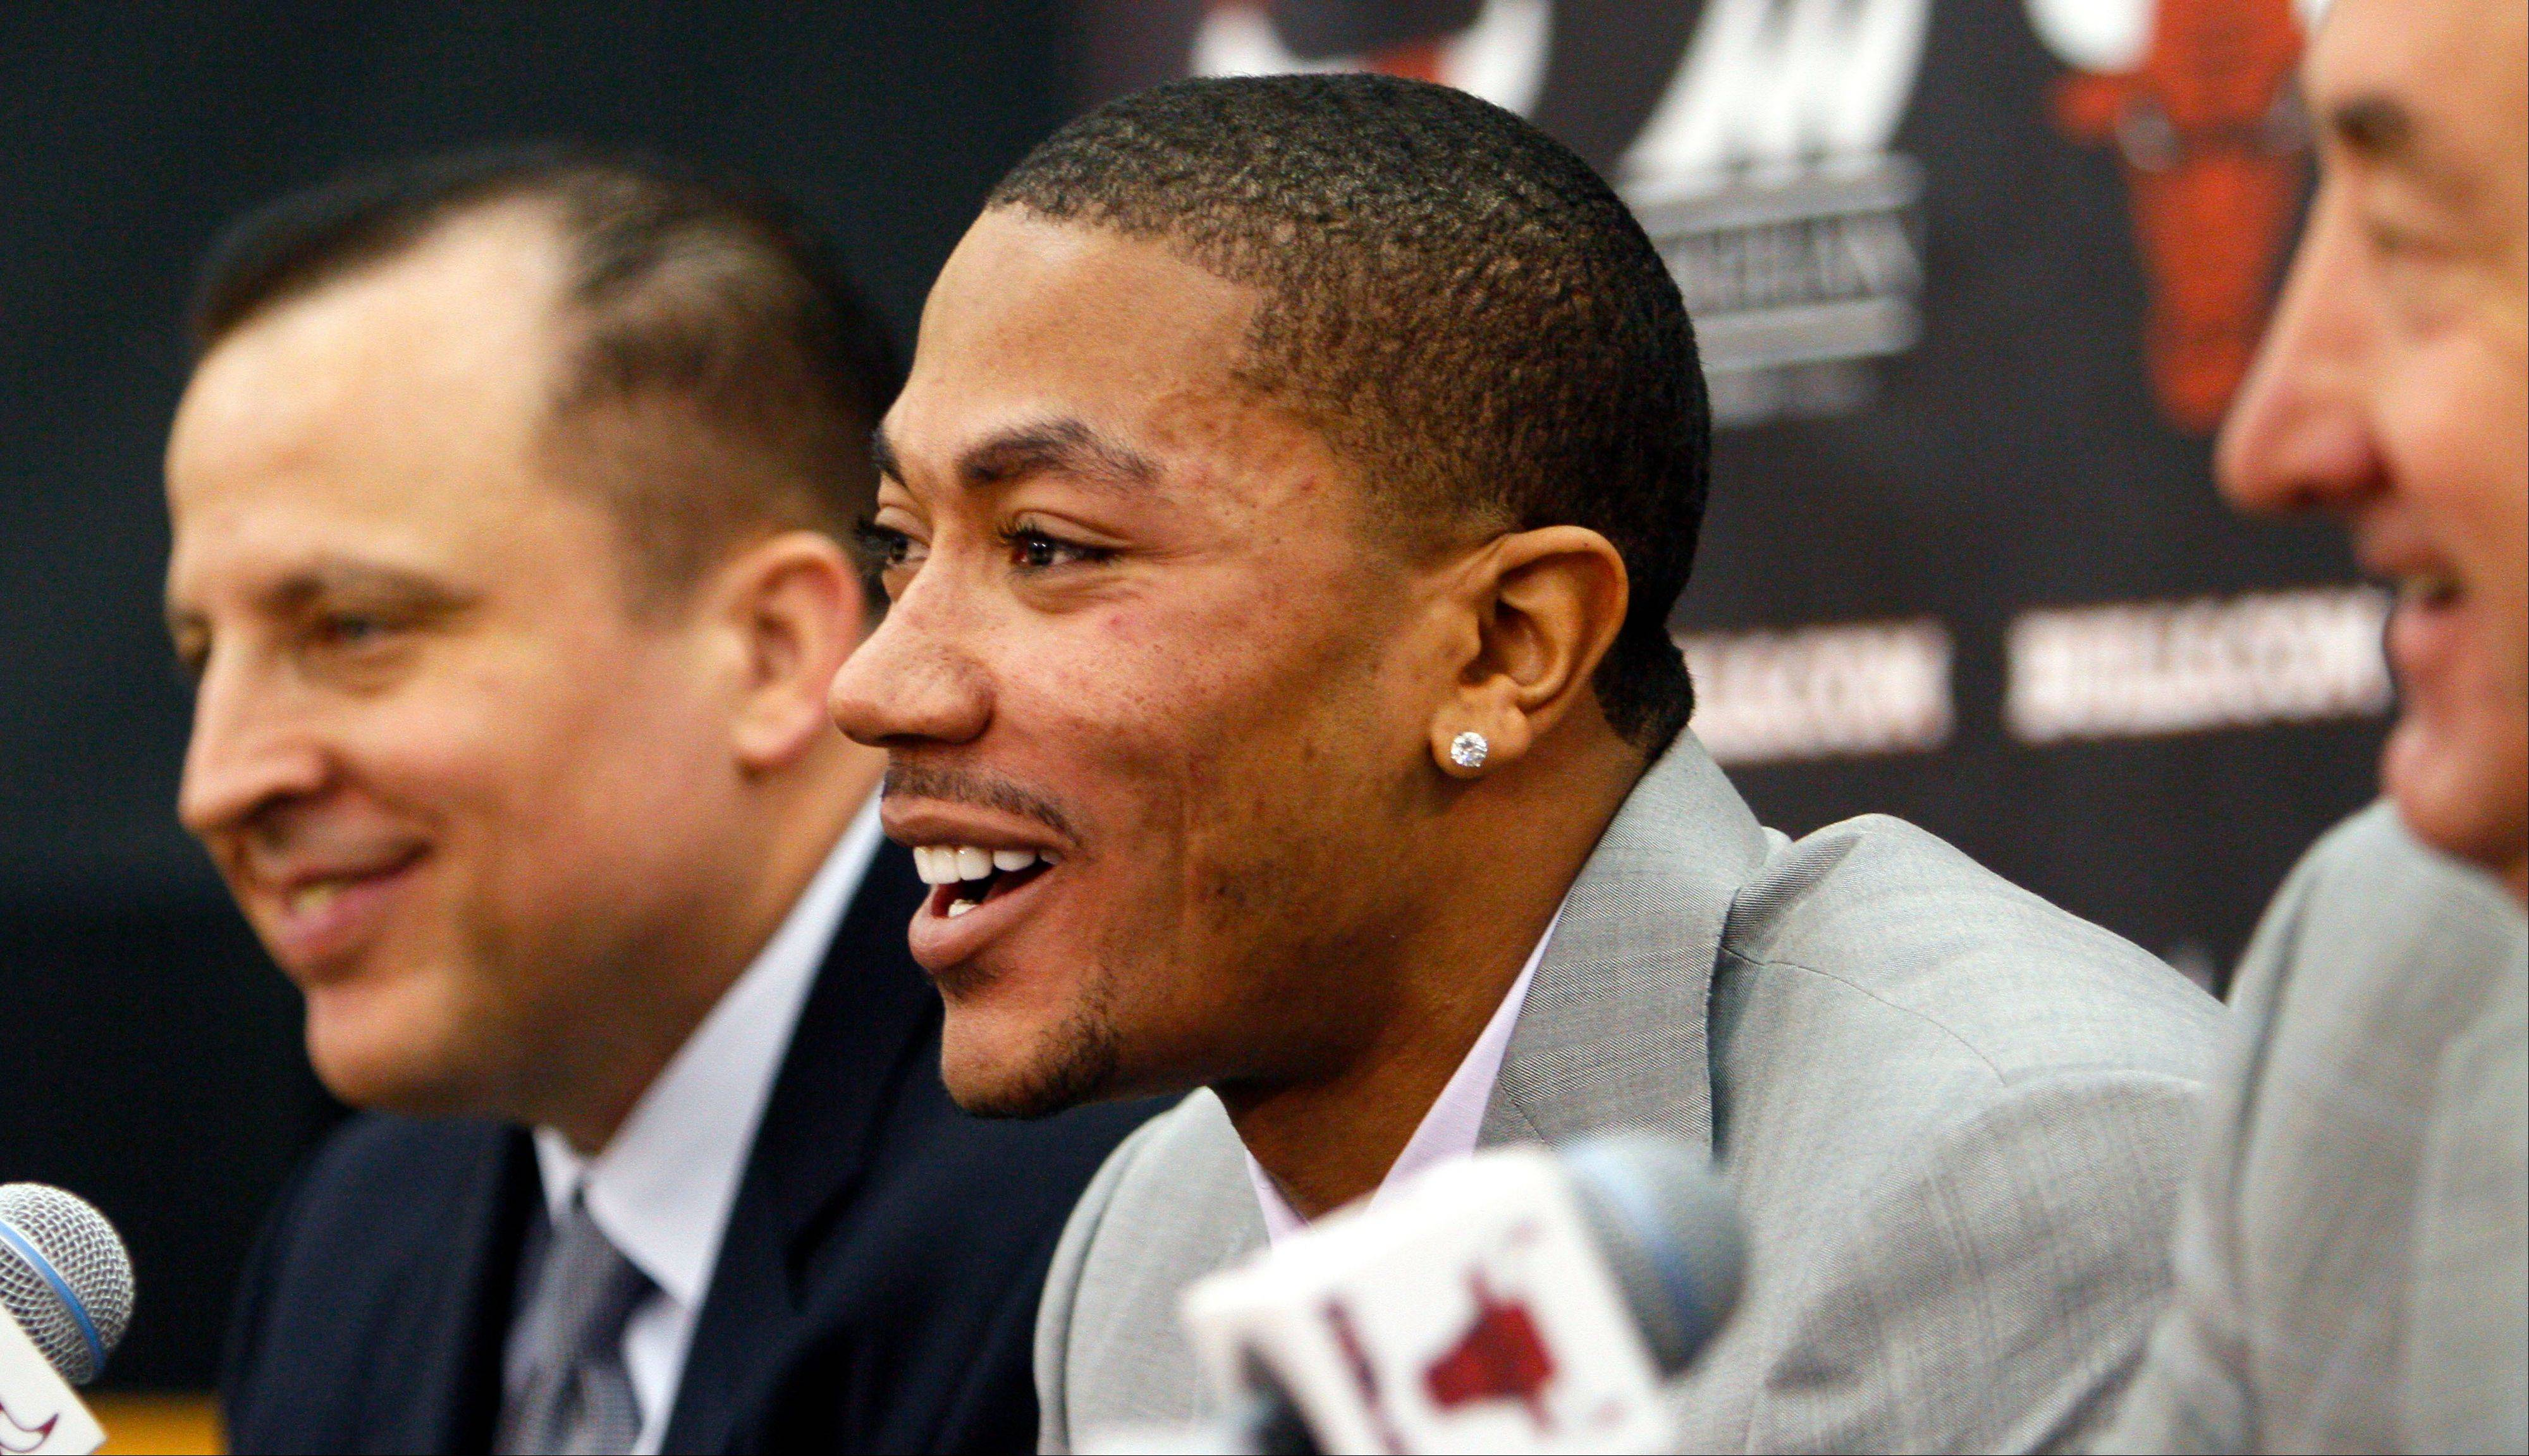 Reigning MVP Derrick Rose, smiles during a news conference flanked by Bulls coach Tom Thibodeau, left, and general manager Gar Forman on Wednesday announcing Rose's five-year contract extension.